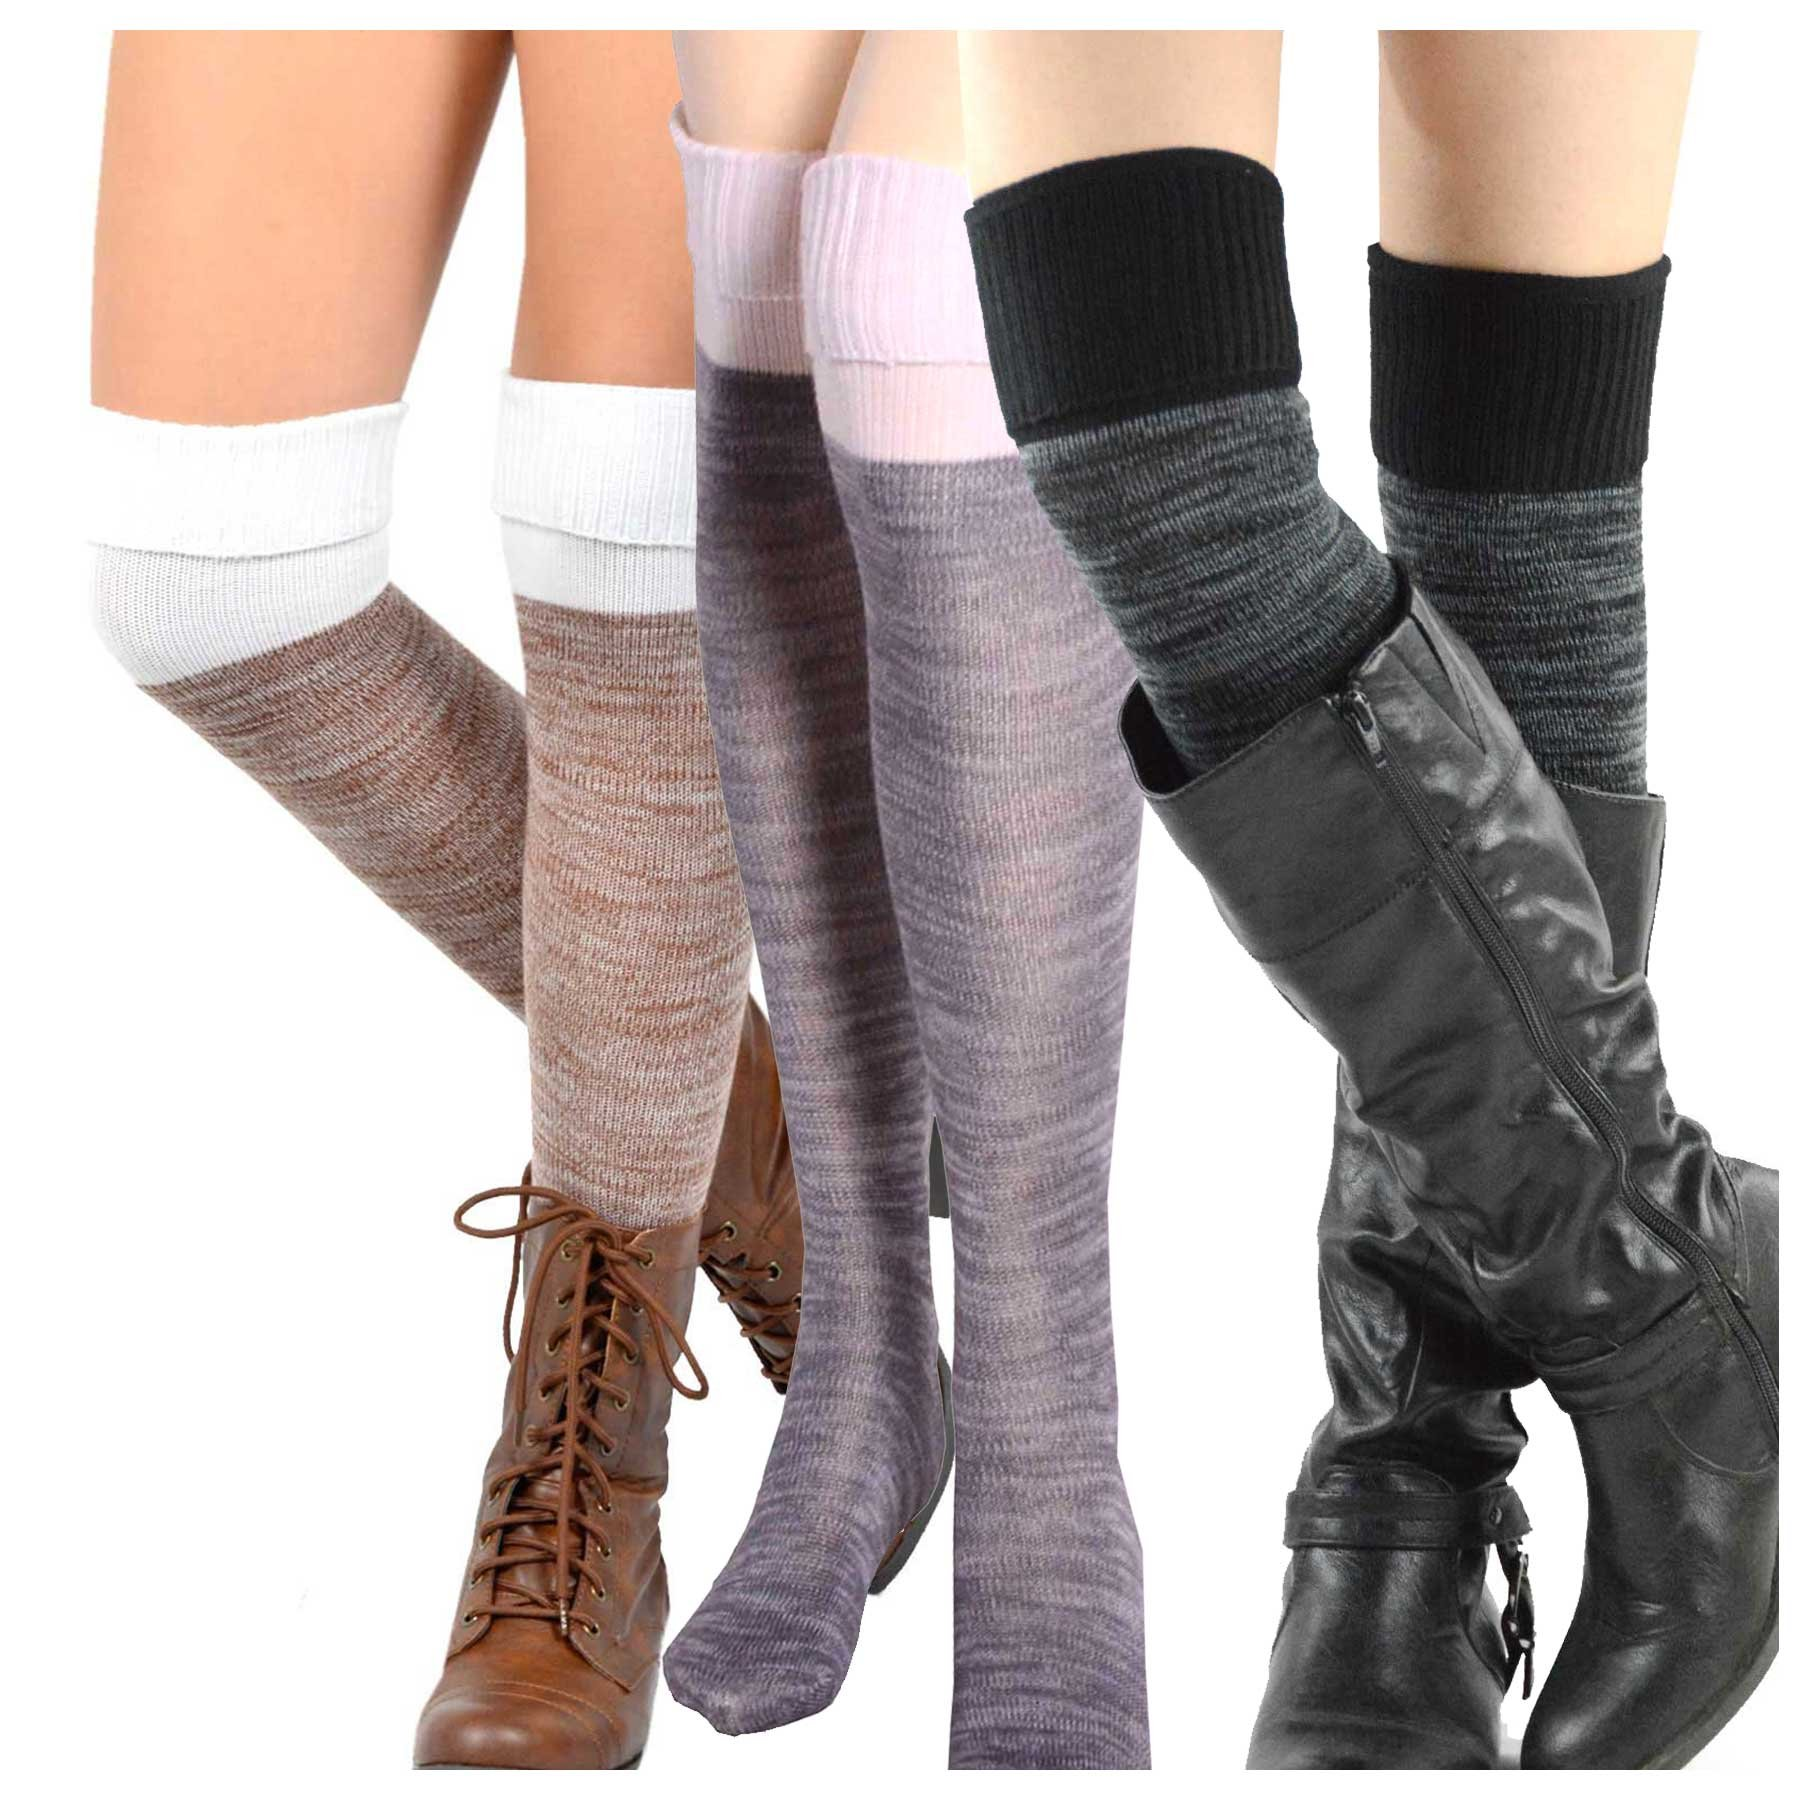 Teehee Women's Fashion Cotton Over The Knee Socks - 3 Pairs Pack (2 Color Cuff)